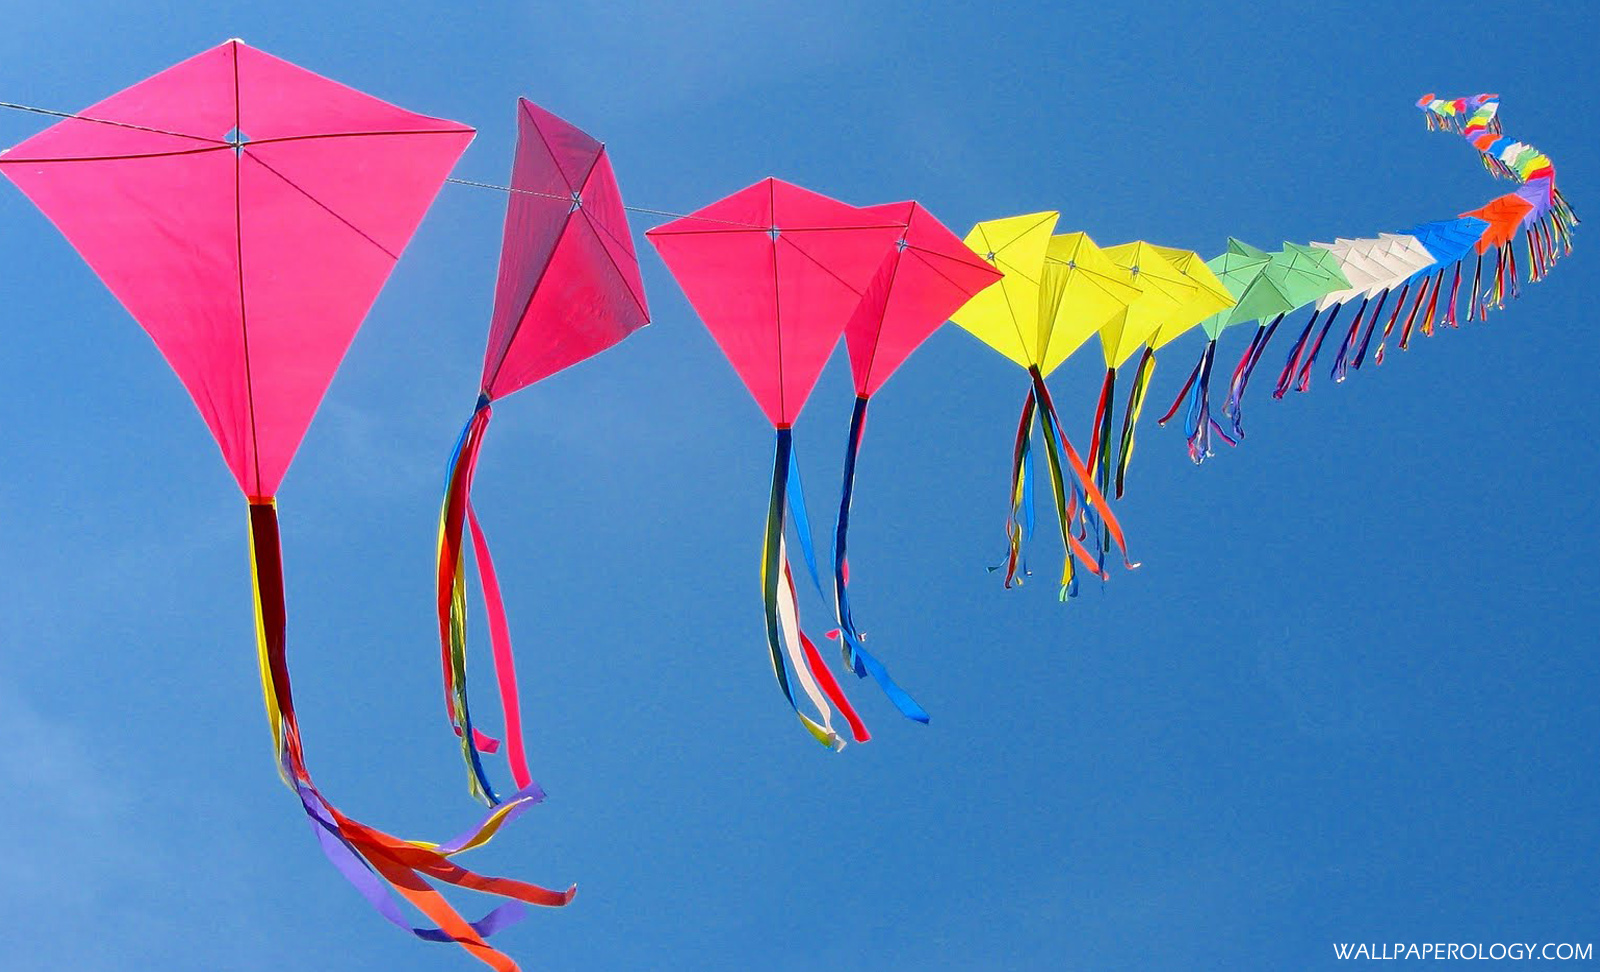 Kite Festival HQ Wallpaper 1600x972